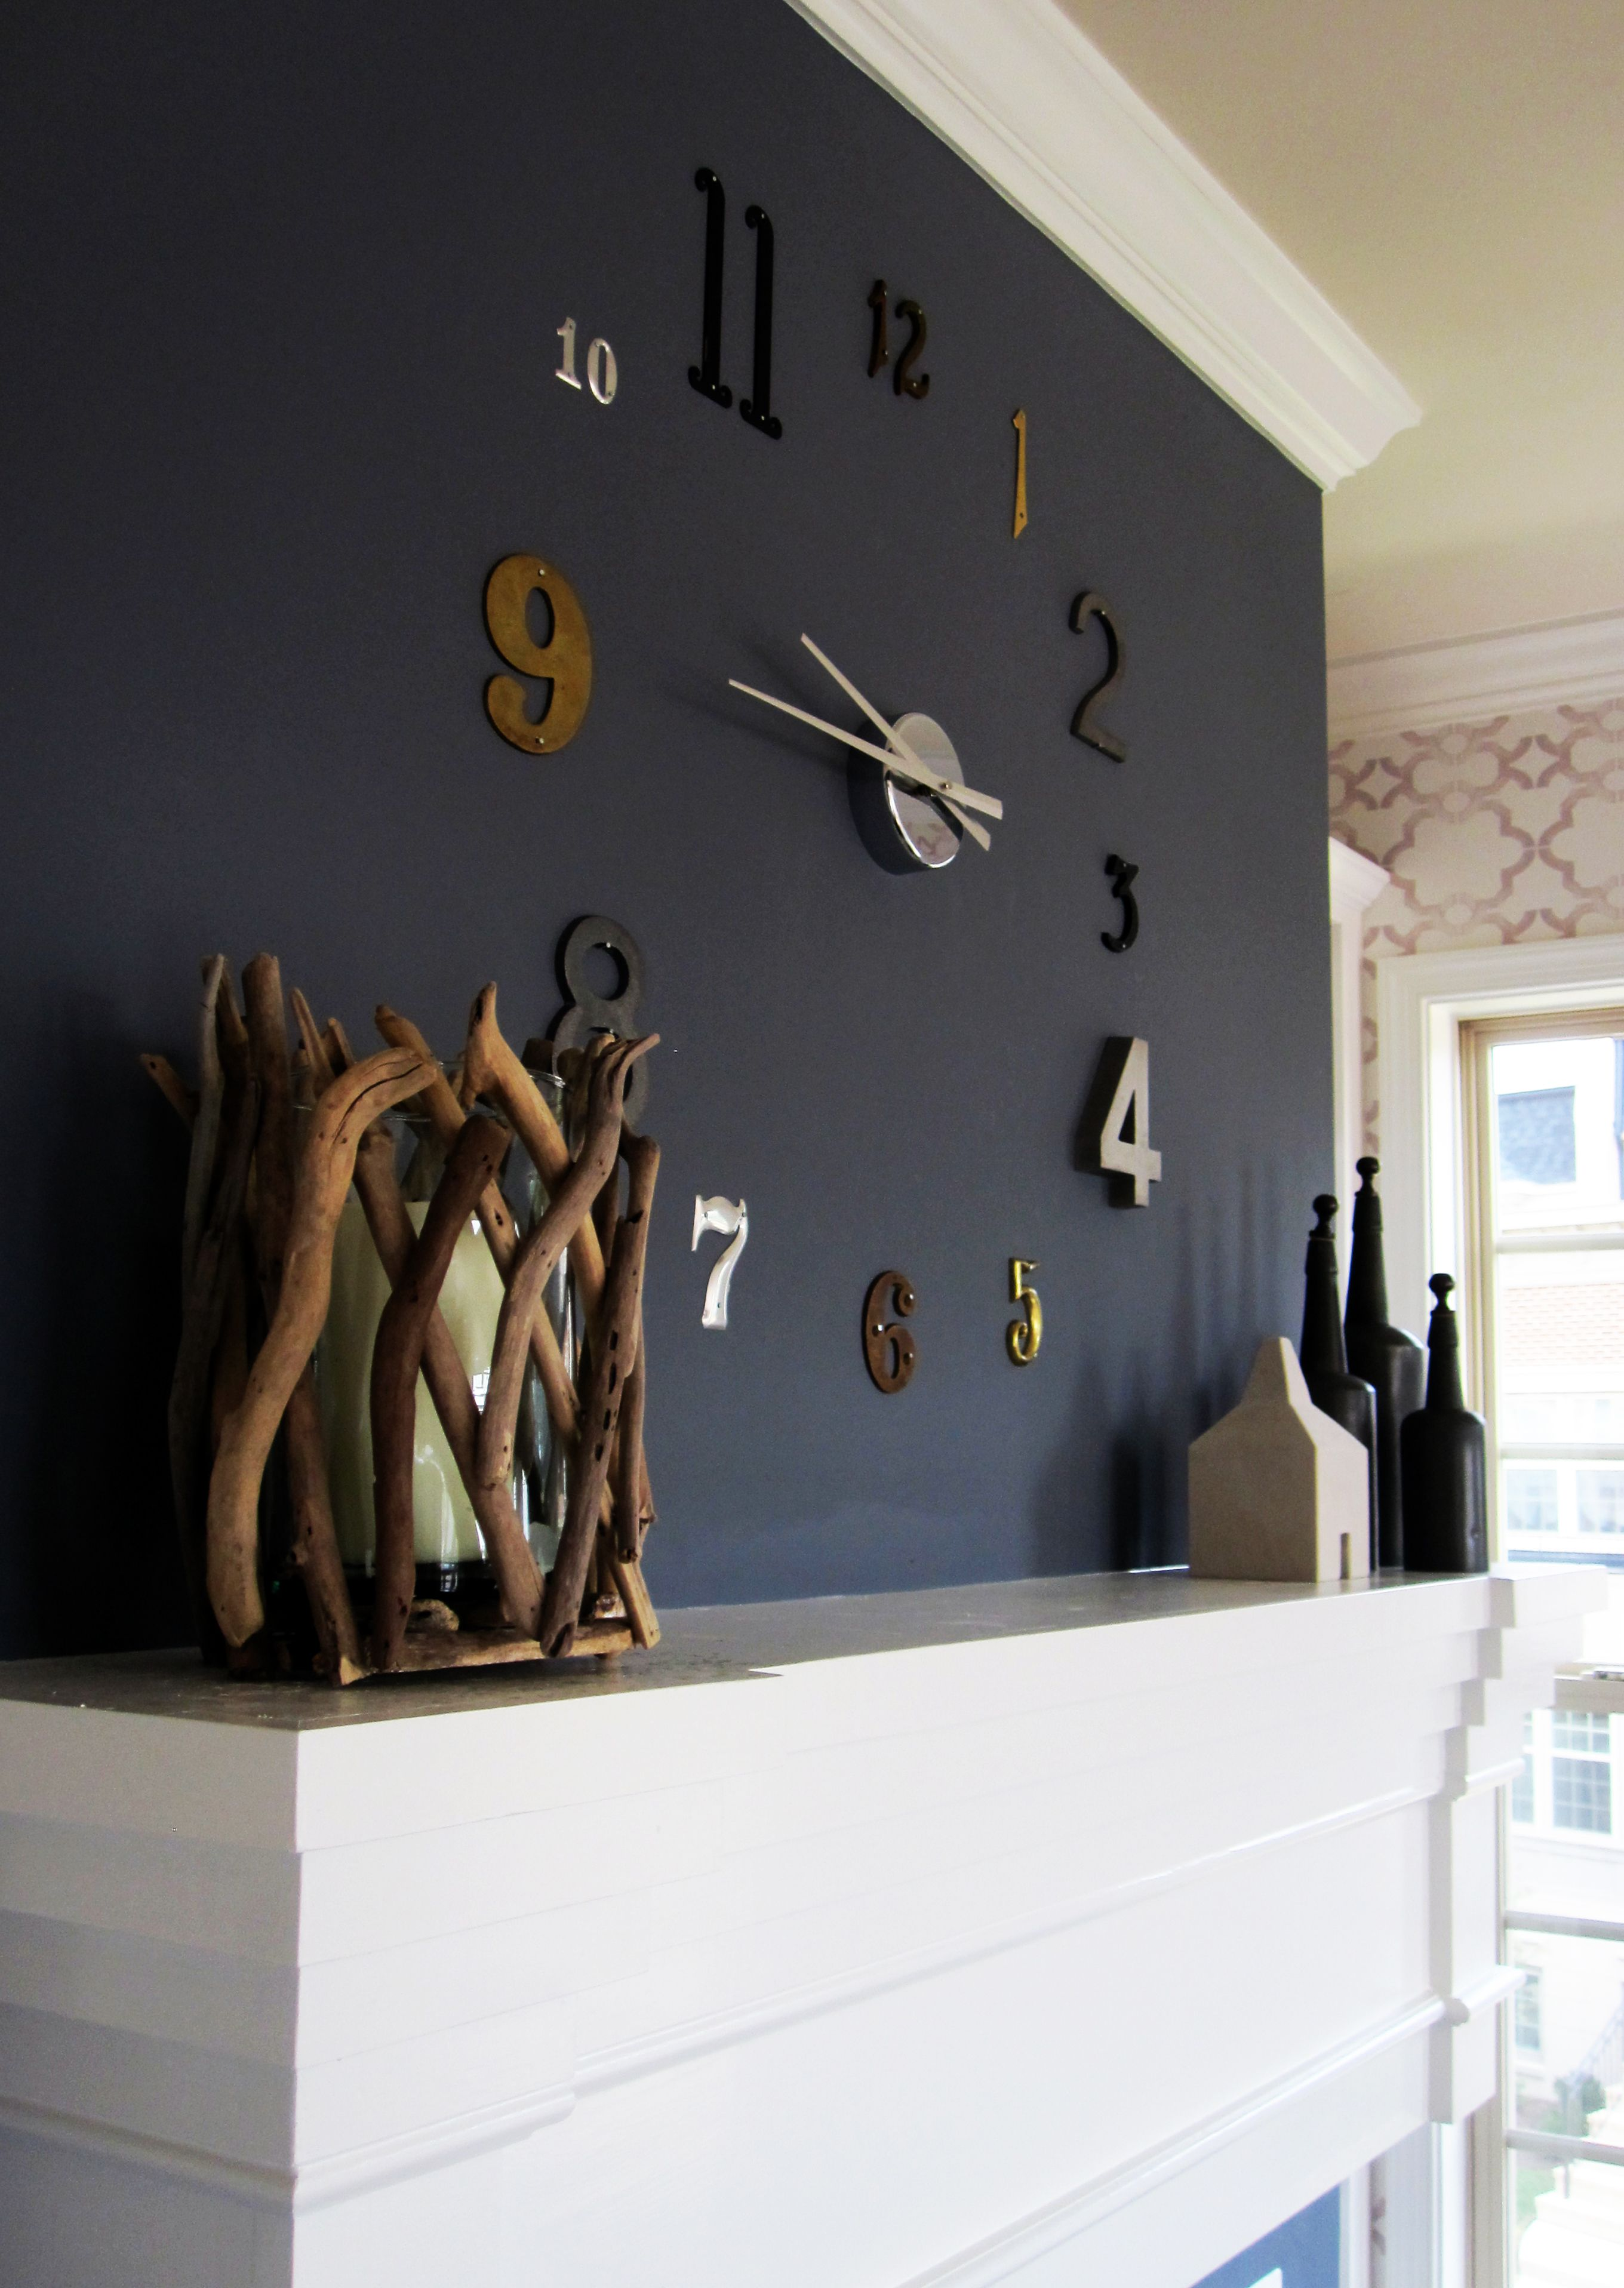 Lauren stevens wall clock for your apartment next future project for the dinning room future - Coole wanduhren ...